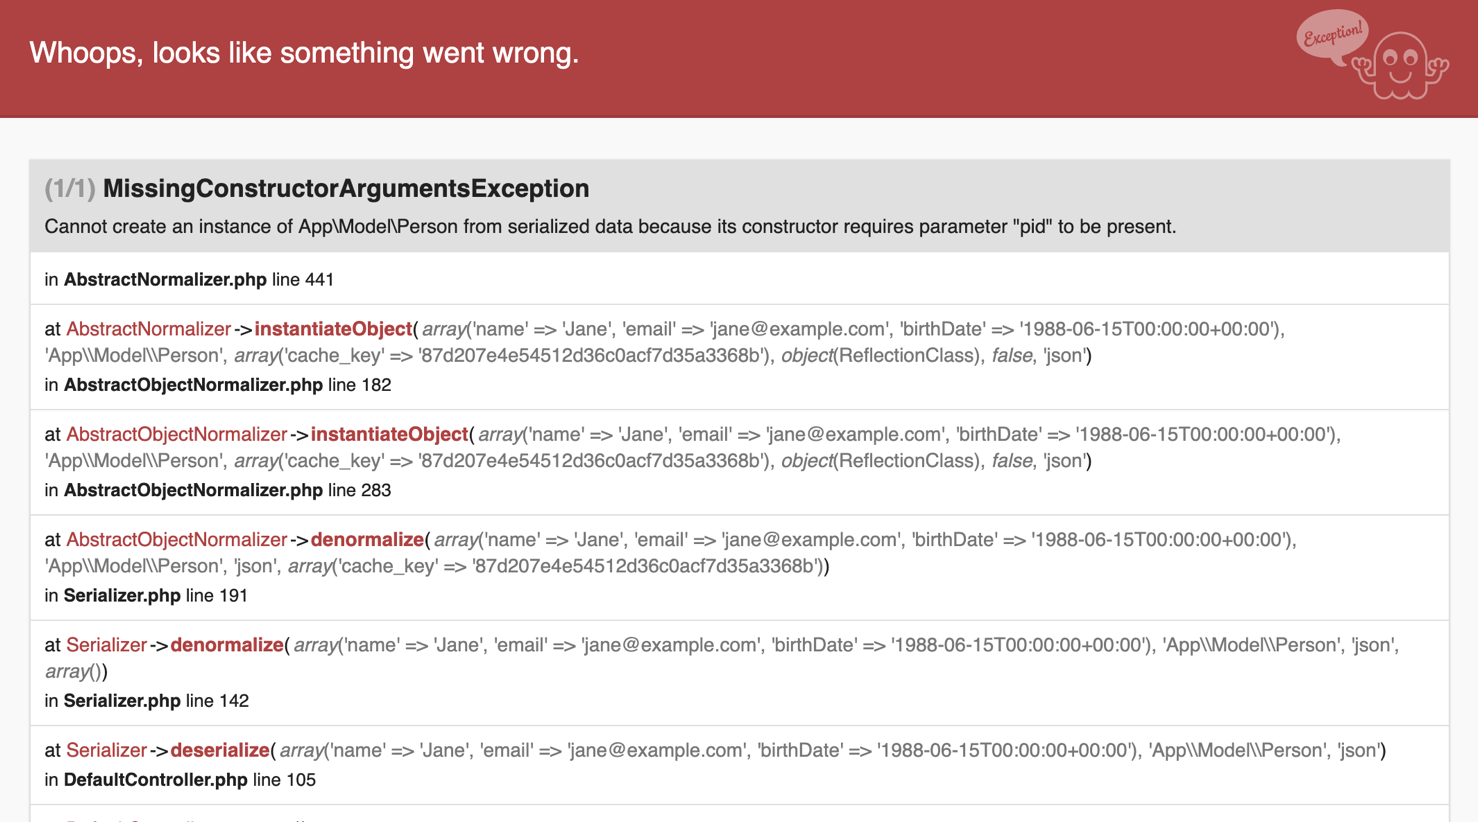 A screenshot of Missing Constructor Arguments Exception.